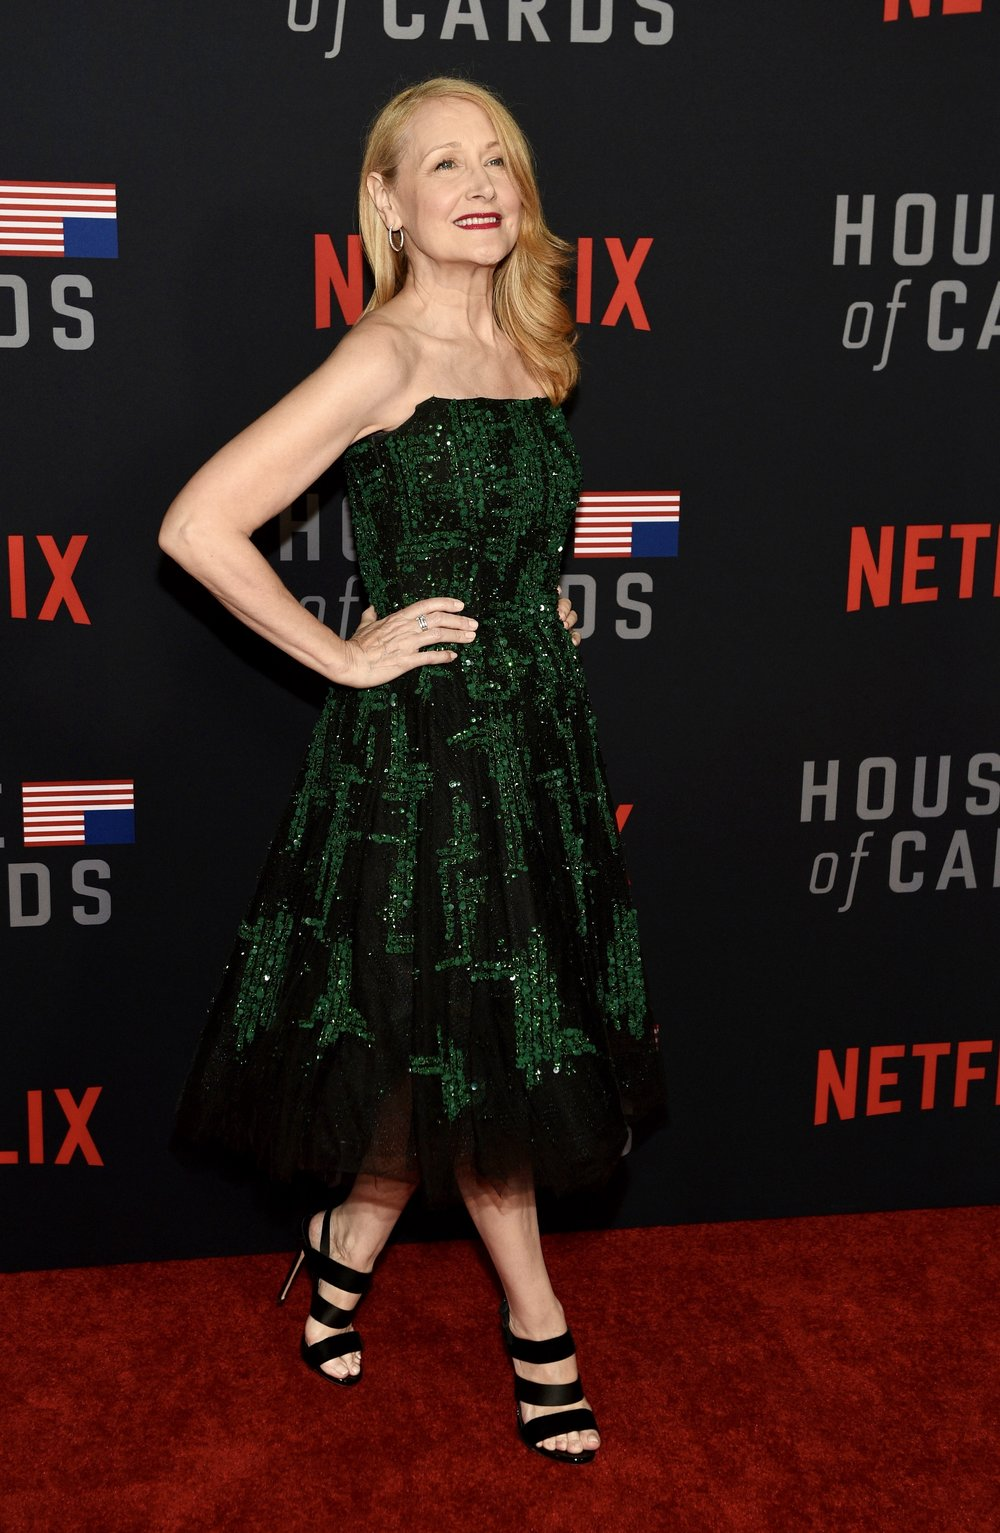 """Patricia Clarkson attends the Los Angeles premiere screening of Netflix's """"House of Cards"""" Season 6."""